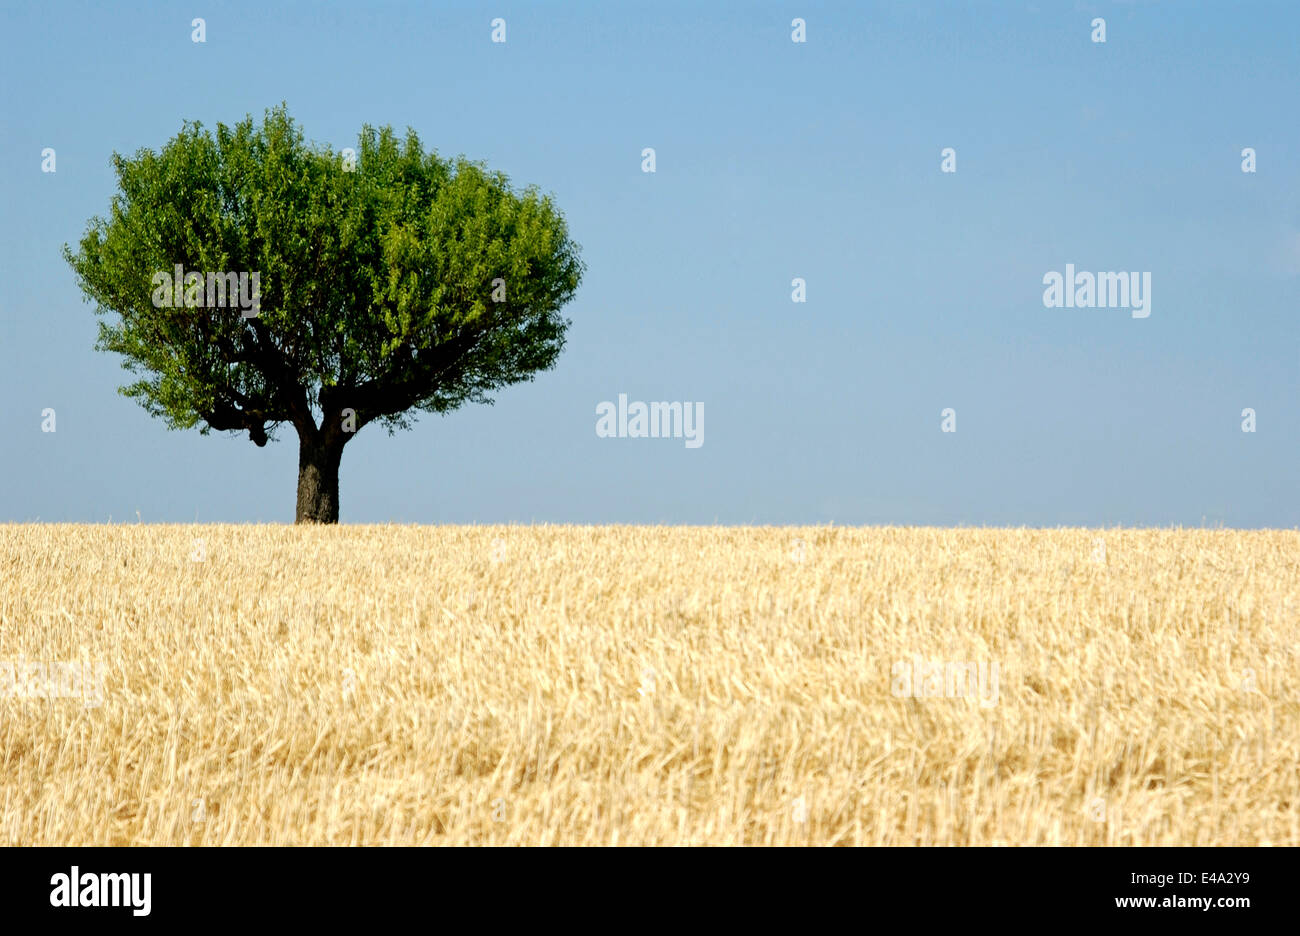 Olive tree in a wheat field in Provence, France in summer season - Stock Image